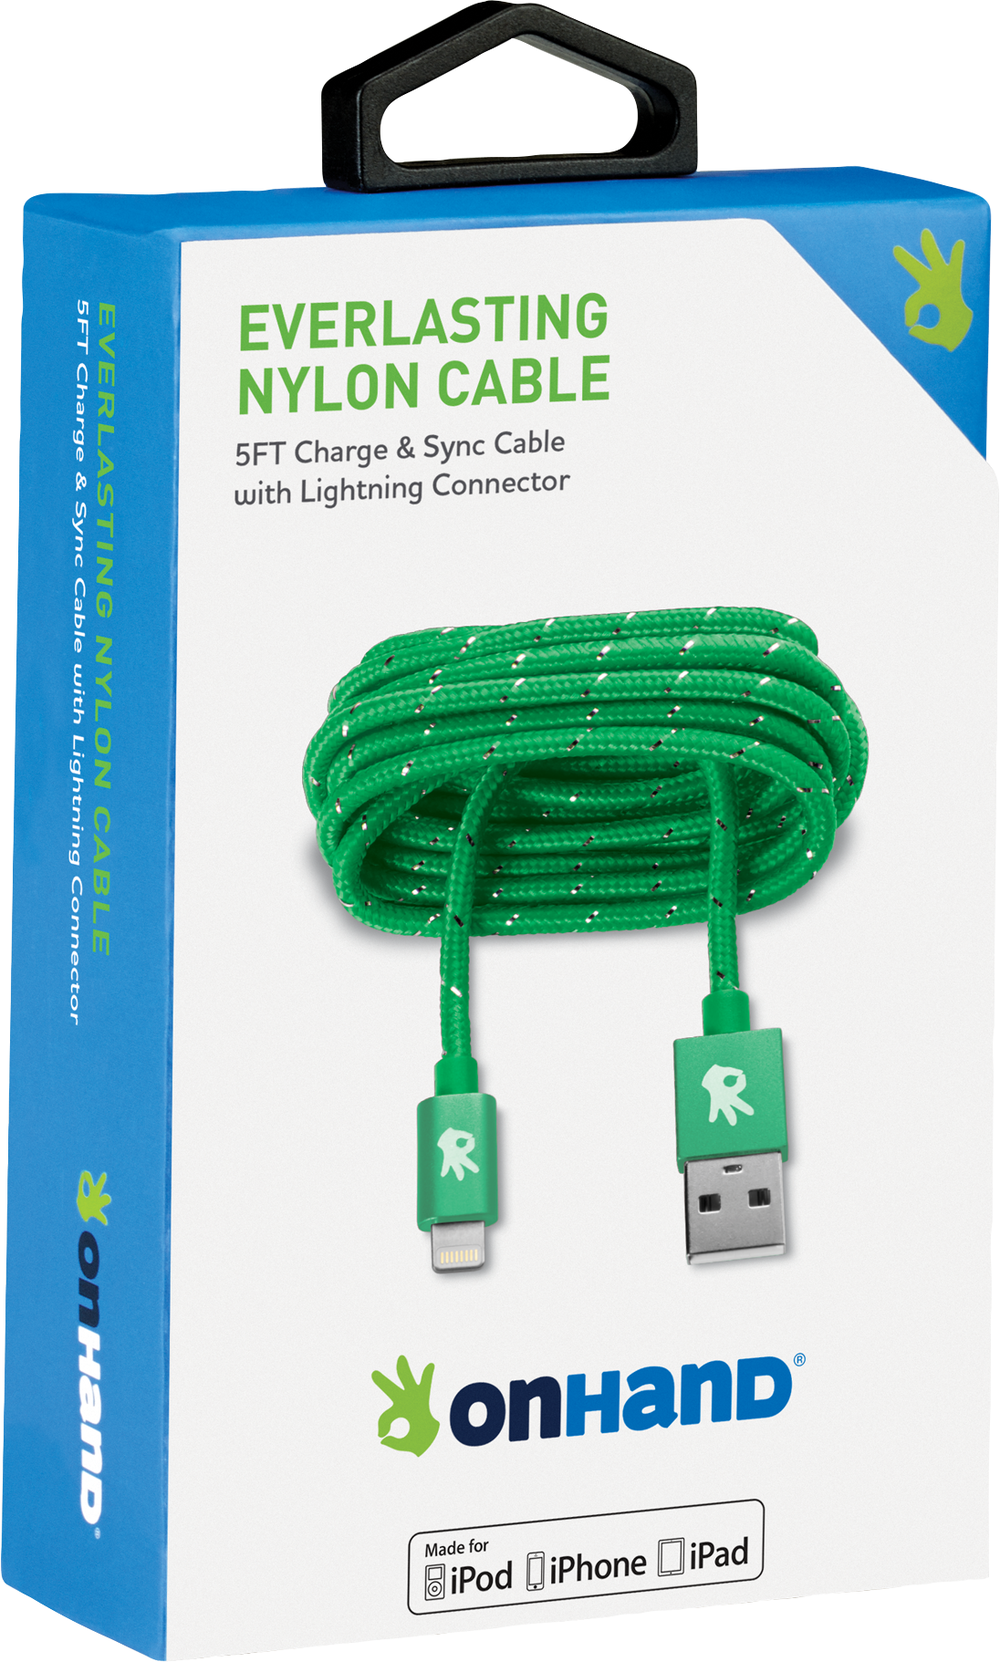 OnHand Everlasting Nylon Cable for iPhone